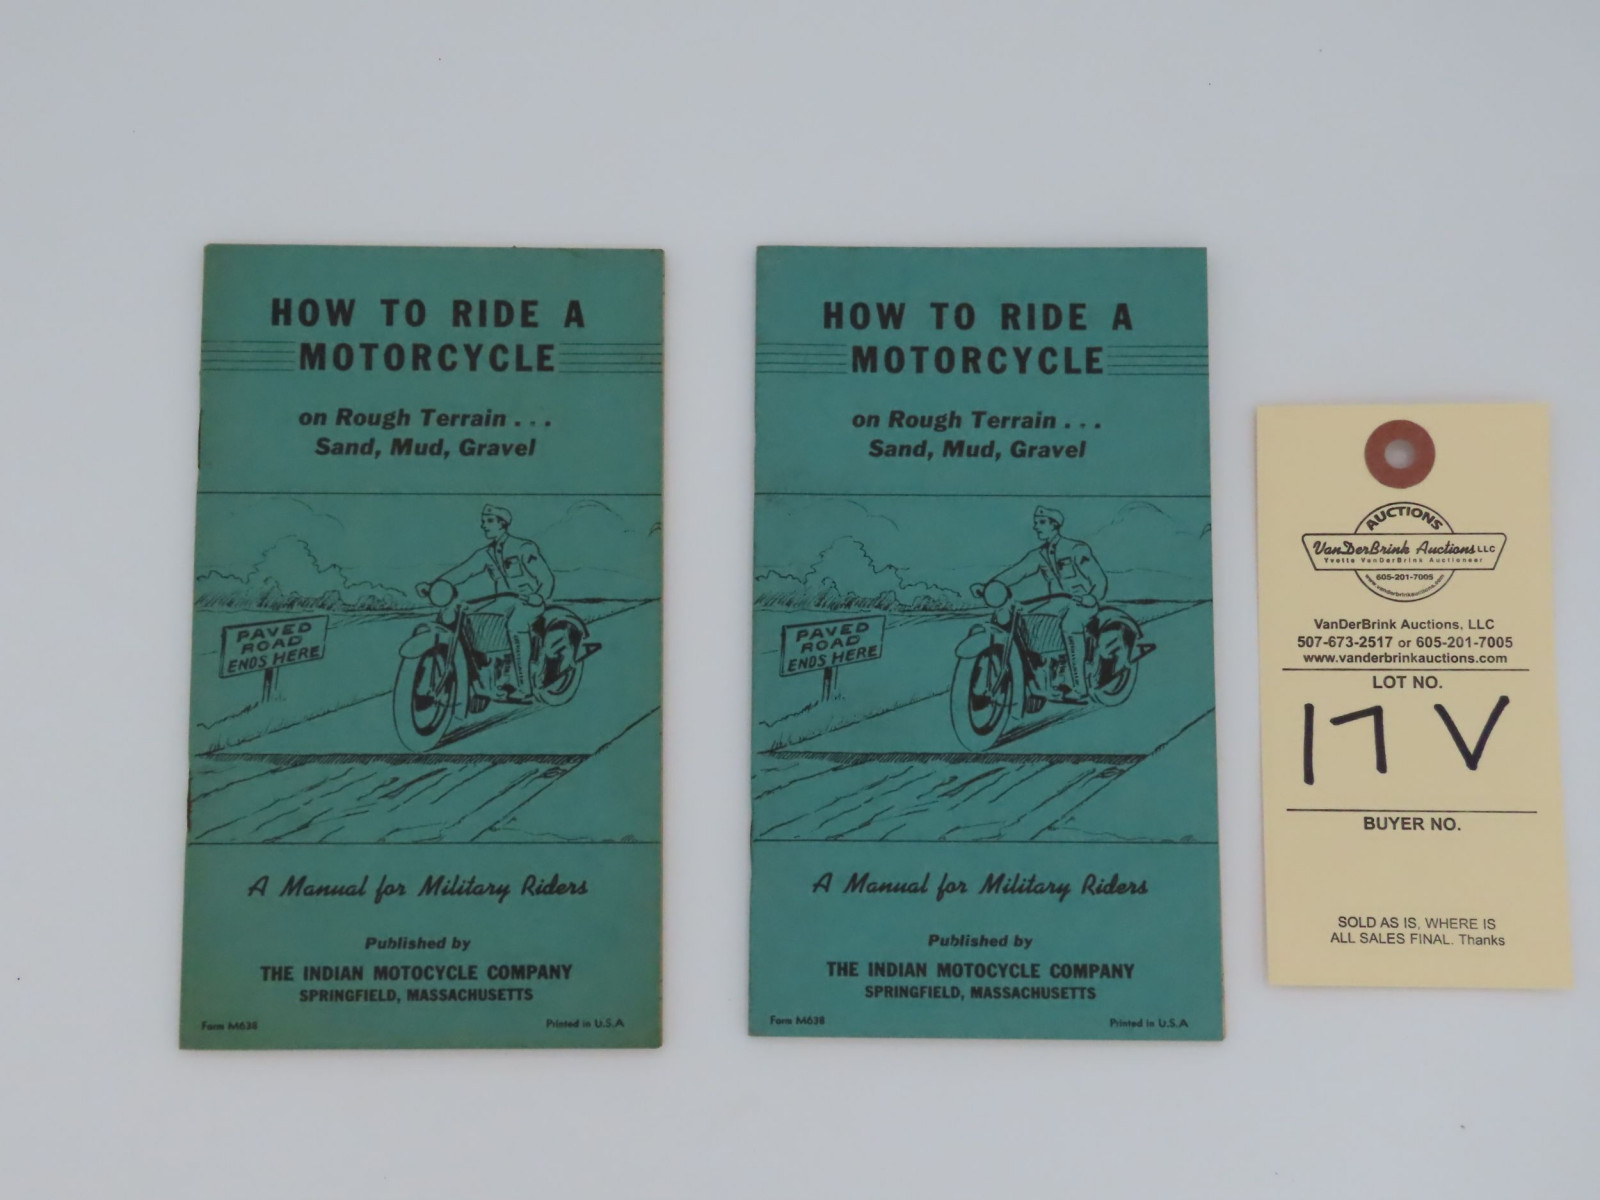 Indian - How to Ride a Motorcycle - Image 1